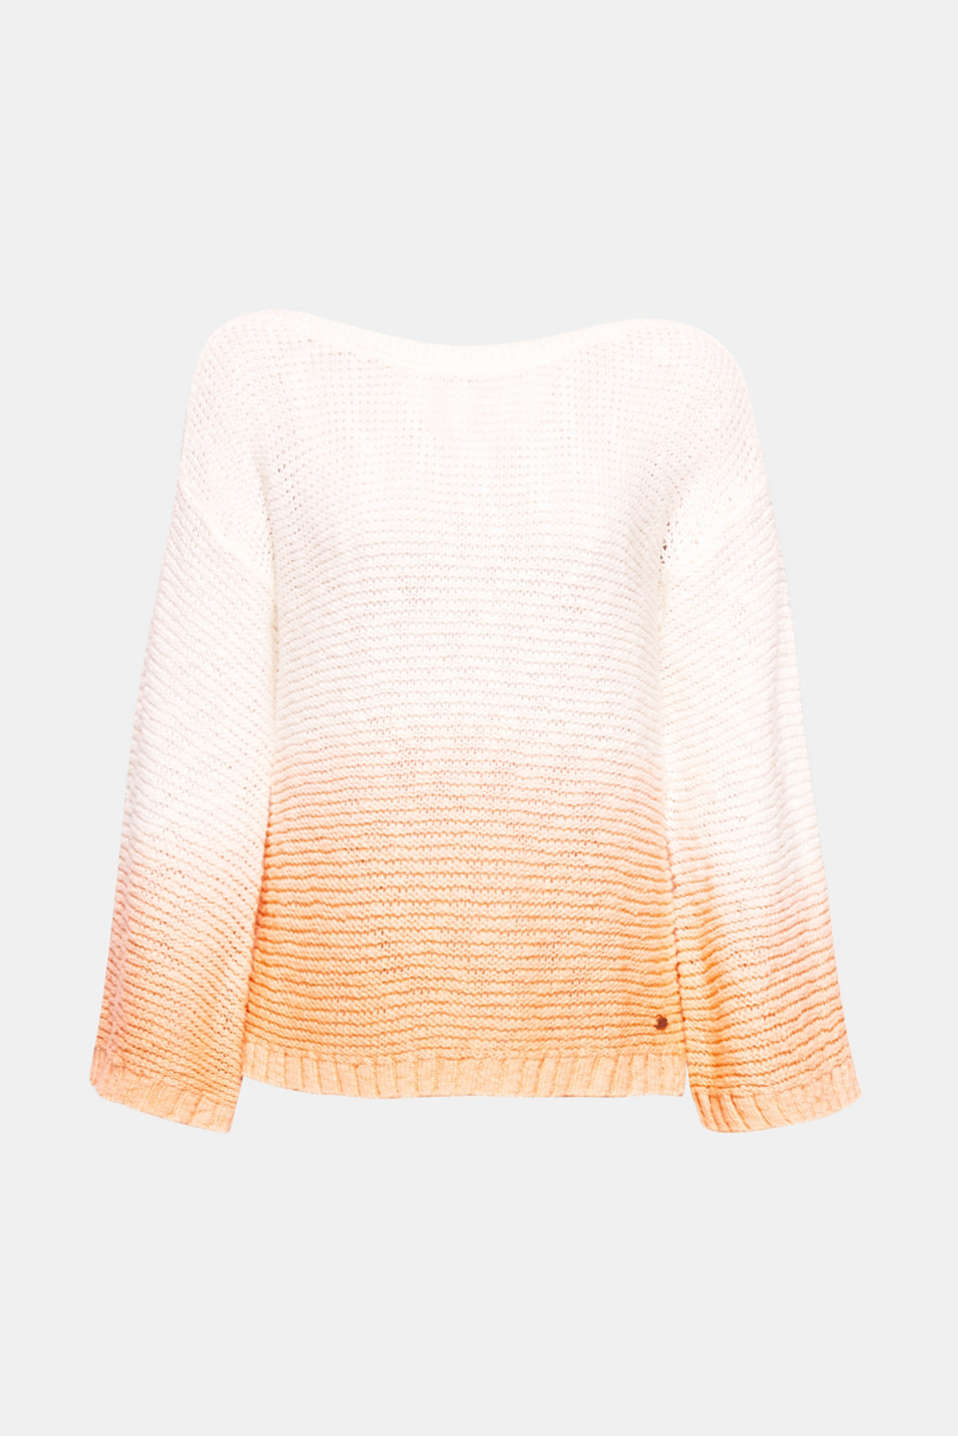 Trendy knit piece with subtle colour gradation! This jumper with wide sleeves and dropped shoulders exudes lightness and gives your outfit an extremely fresh touch.